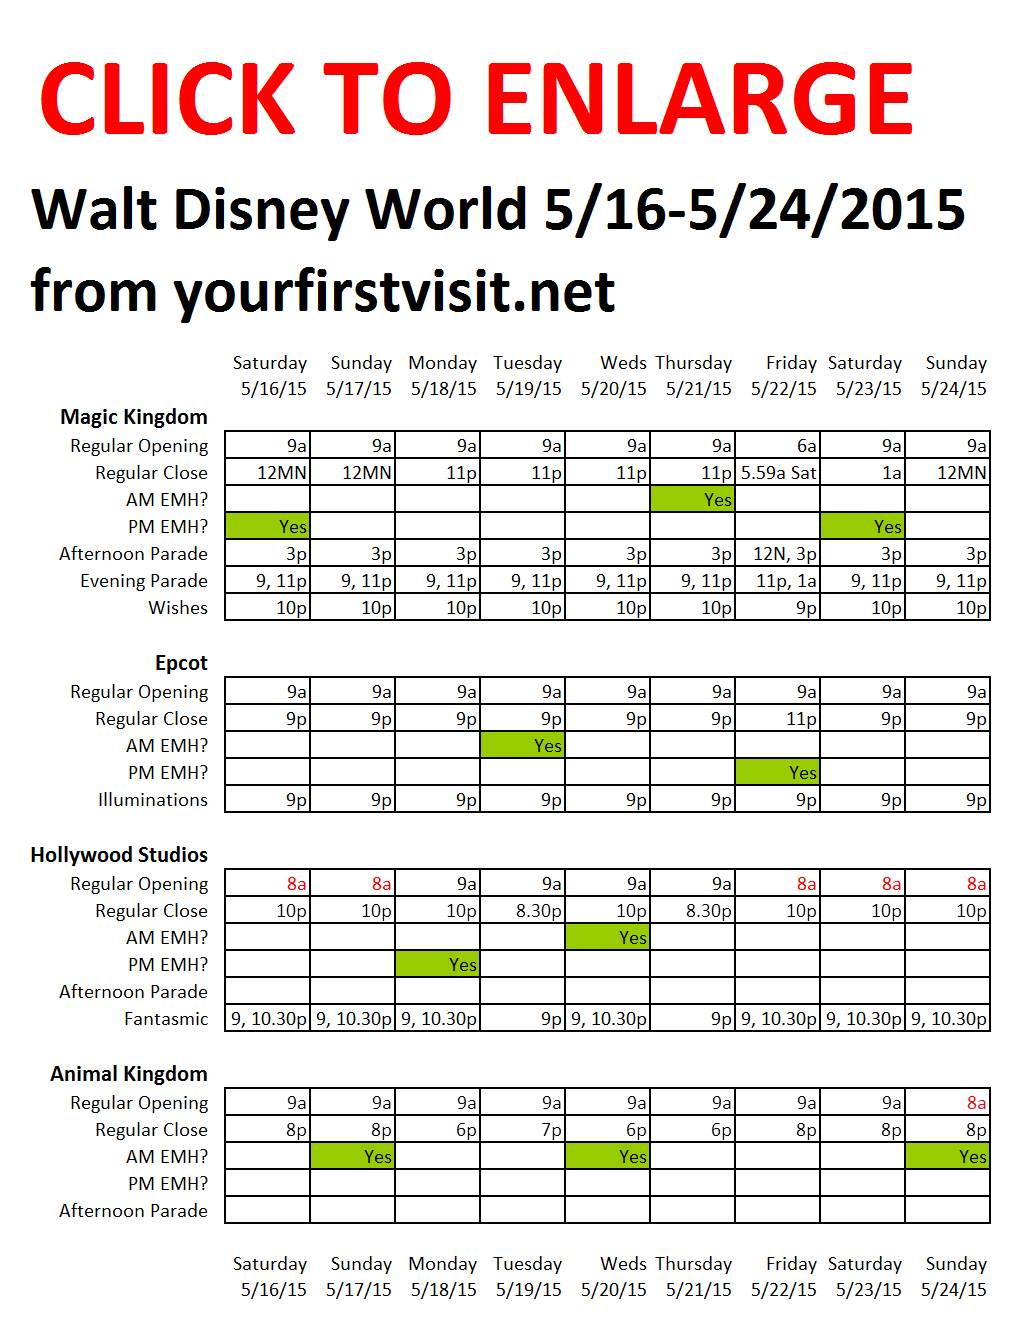 Disney World 5-16 to 5-24-2015 from yourfirstvisit.net